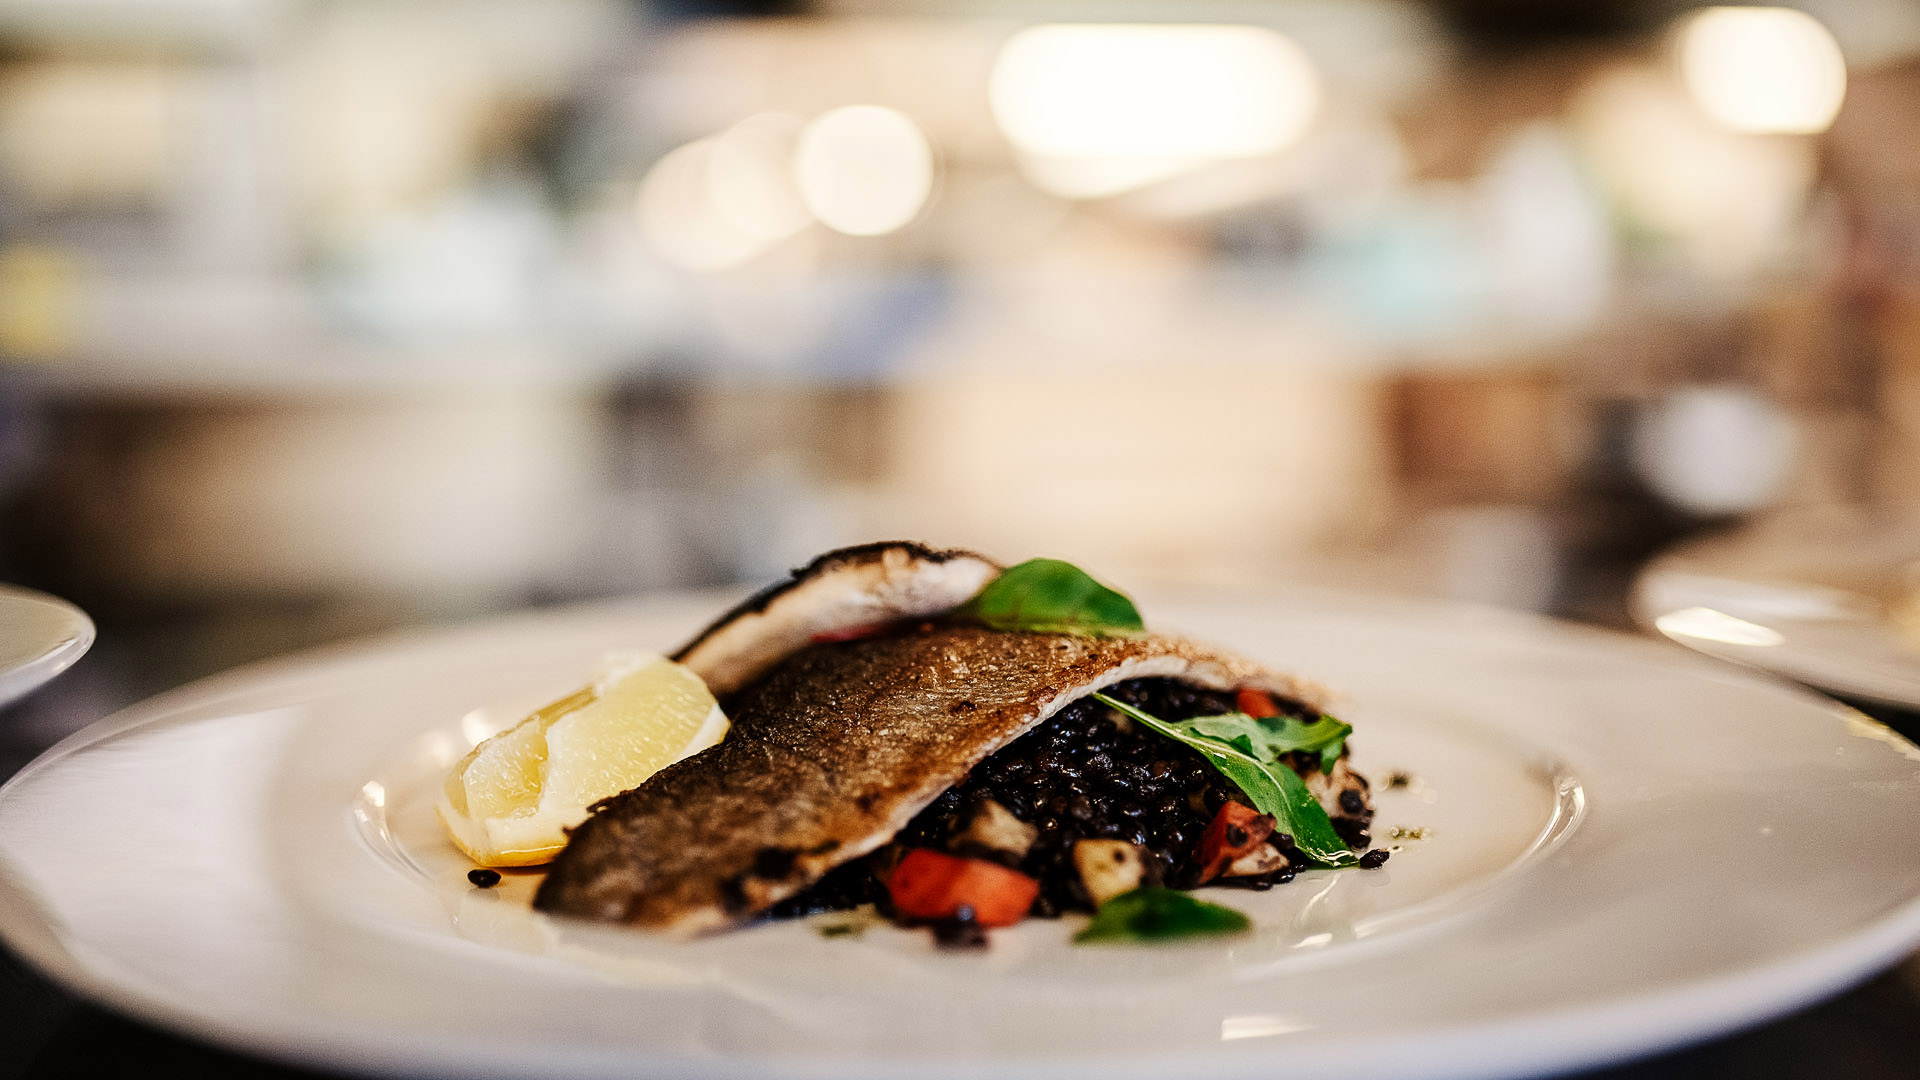 Food picture Fish with lentils in restaurant